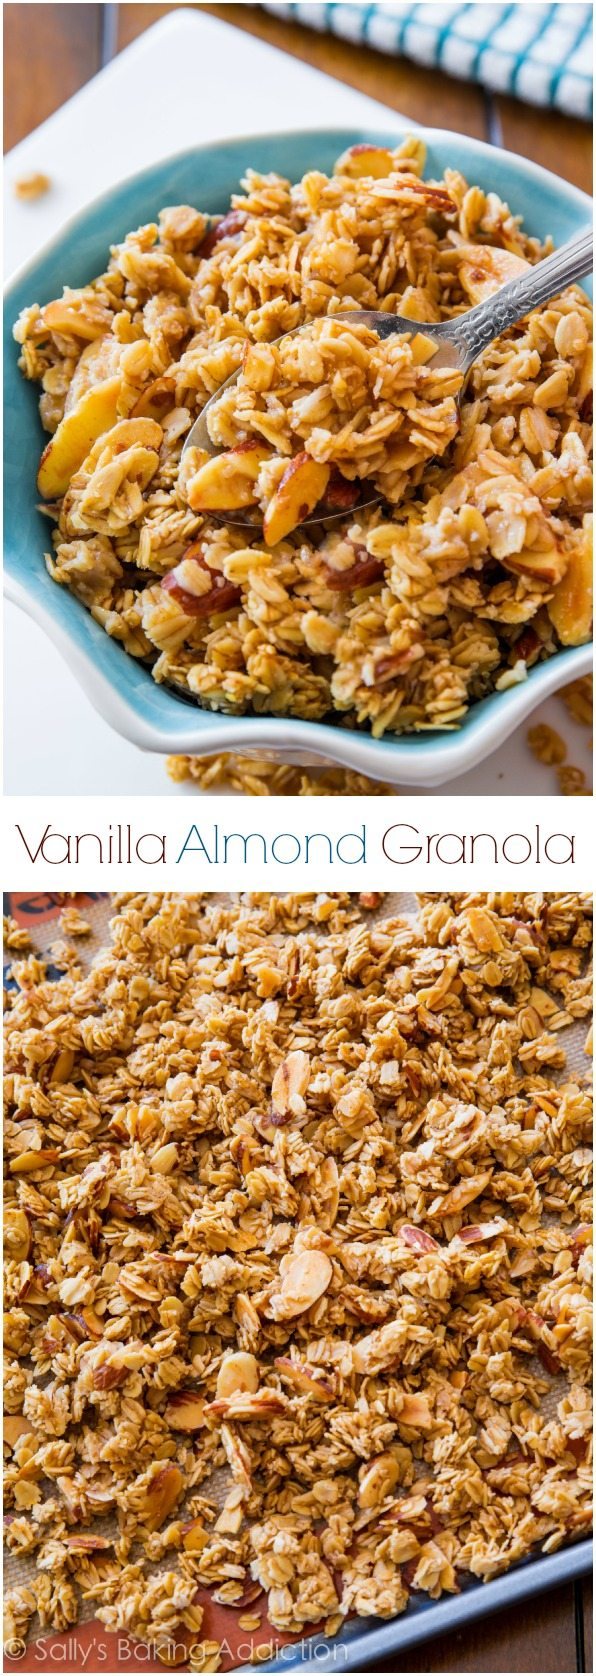 This crunchy Vanilla Almond Granola is exploding with flavor! So simple to make too.